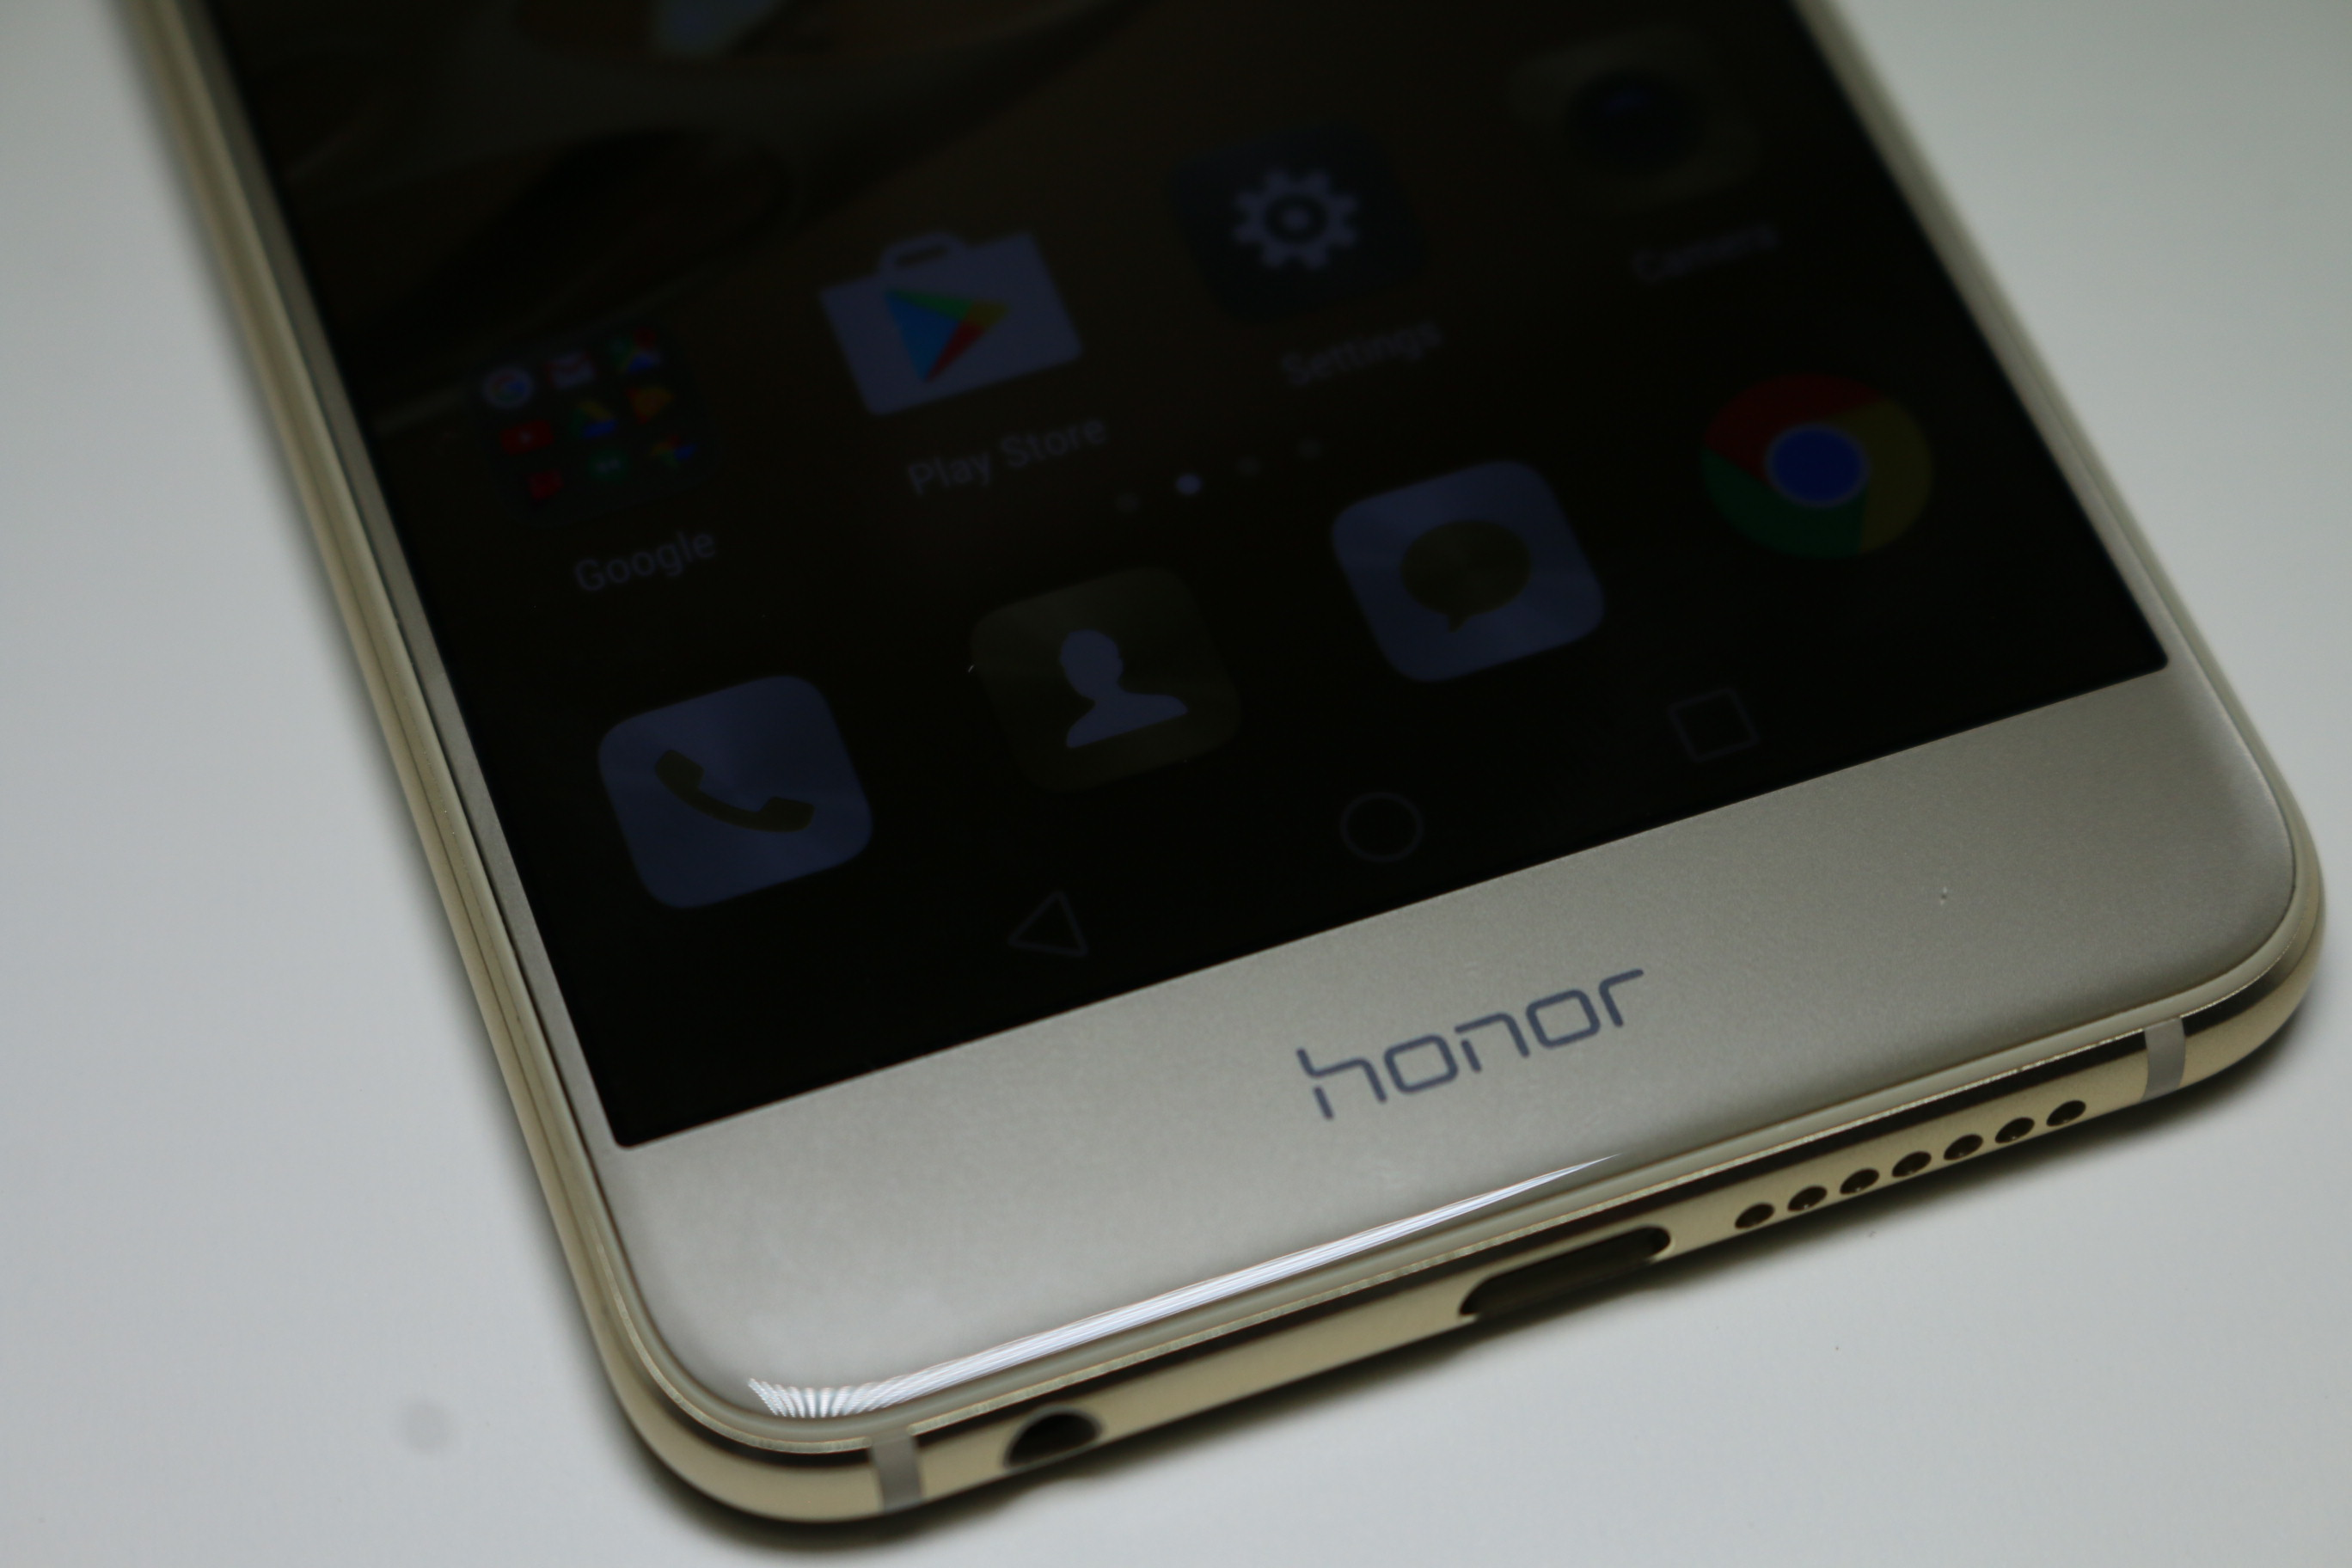 Huawei Honor 8 FAQ, Pros & Cons, User Queries and Answers